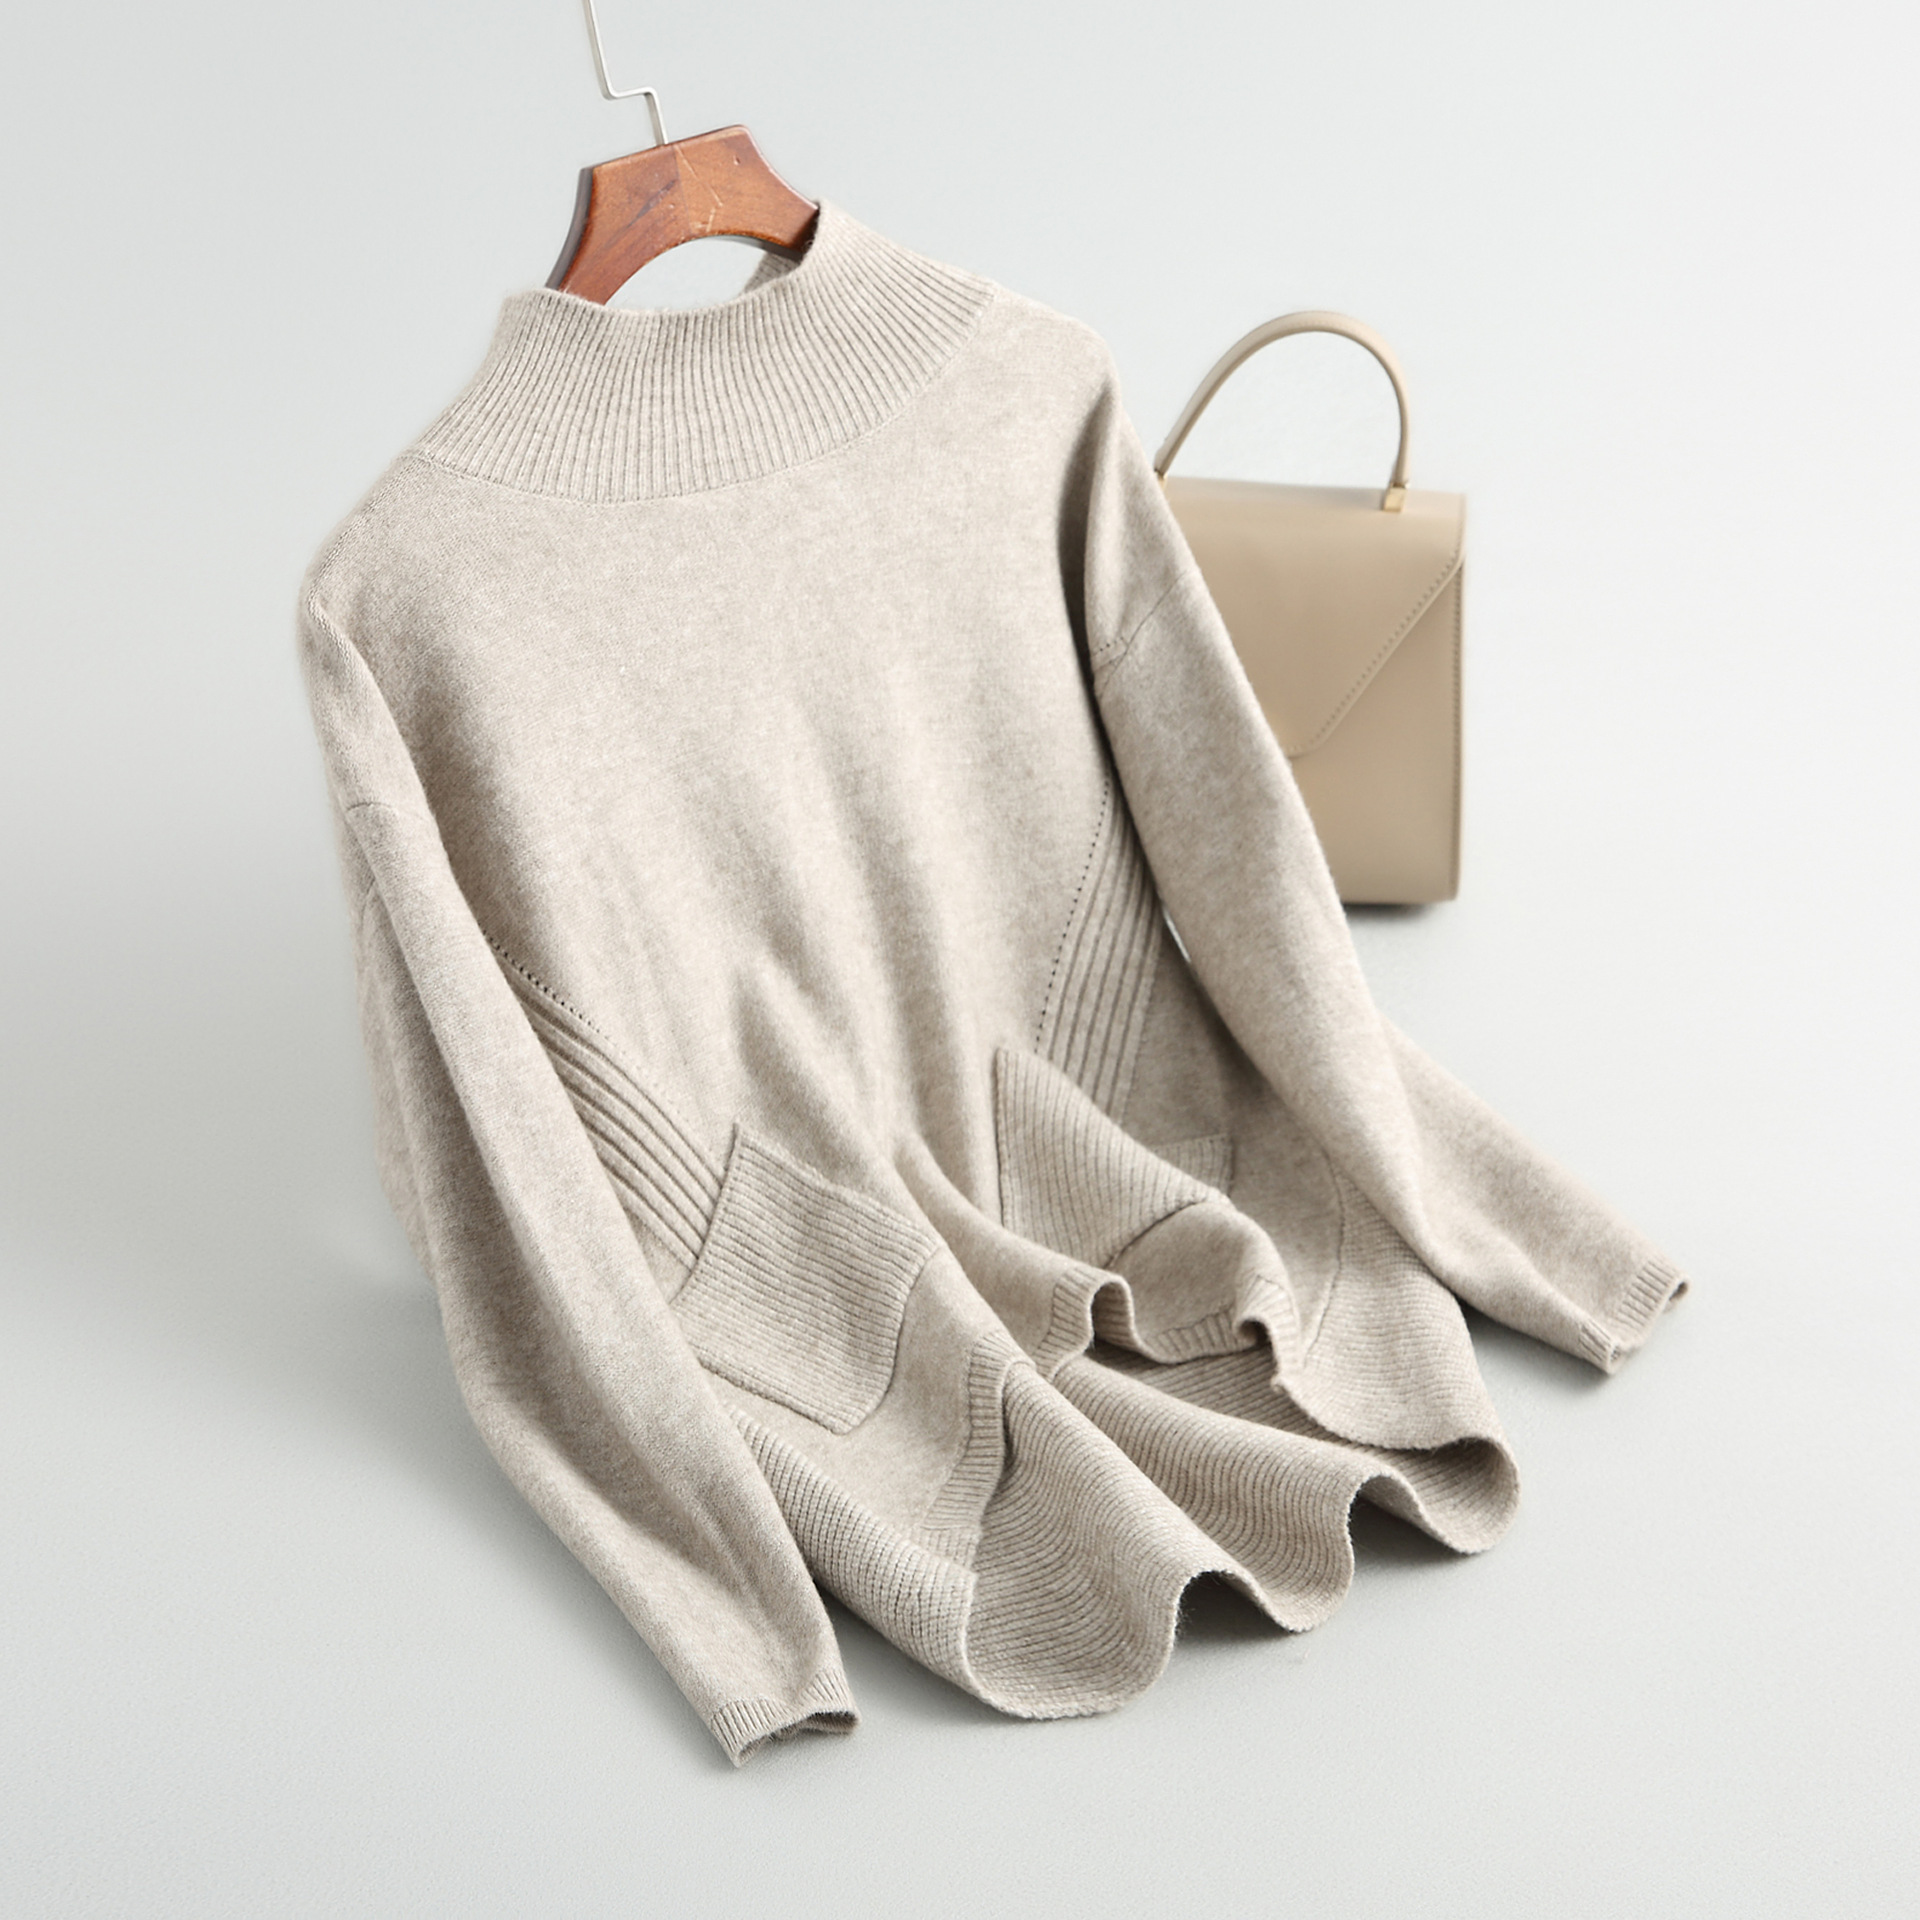 Loose Pocket Knit Minimalist Knit Top 8-1831 Knit Sweater Women Sweaters And Pullovers  Turtleneck Sweater  Autumn Winter